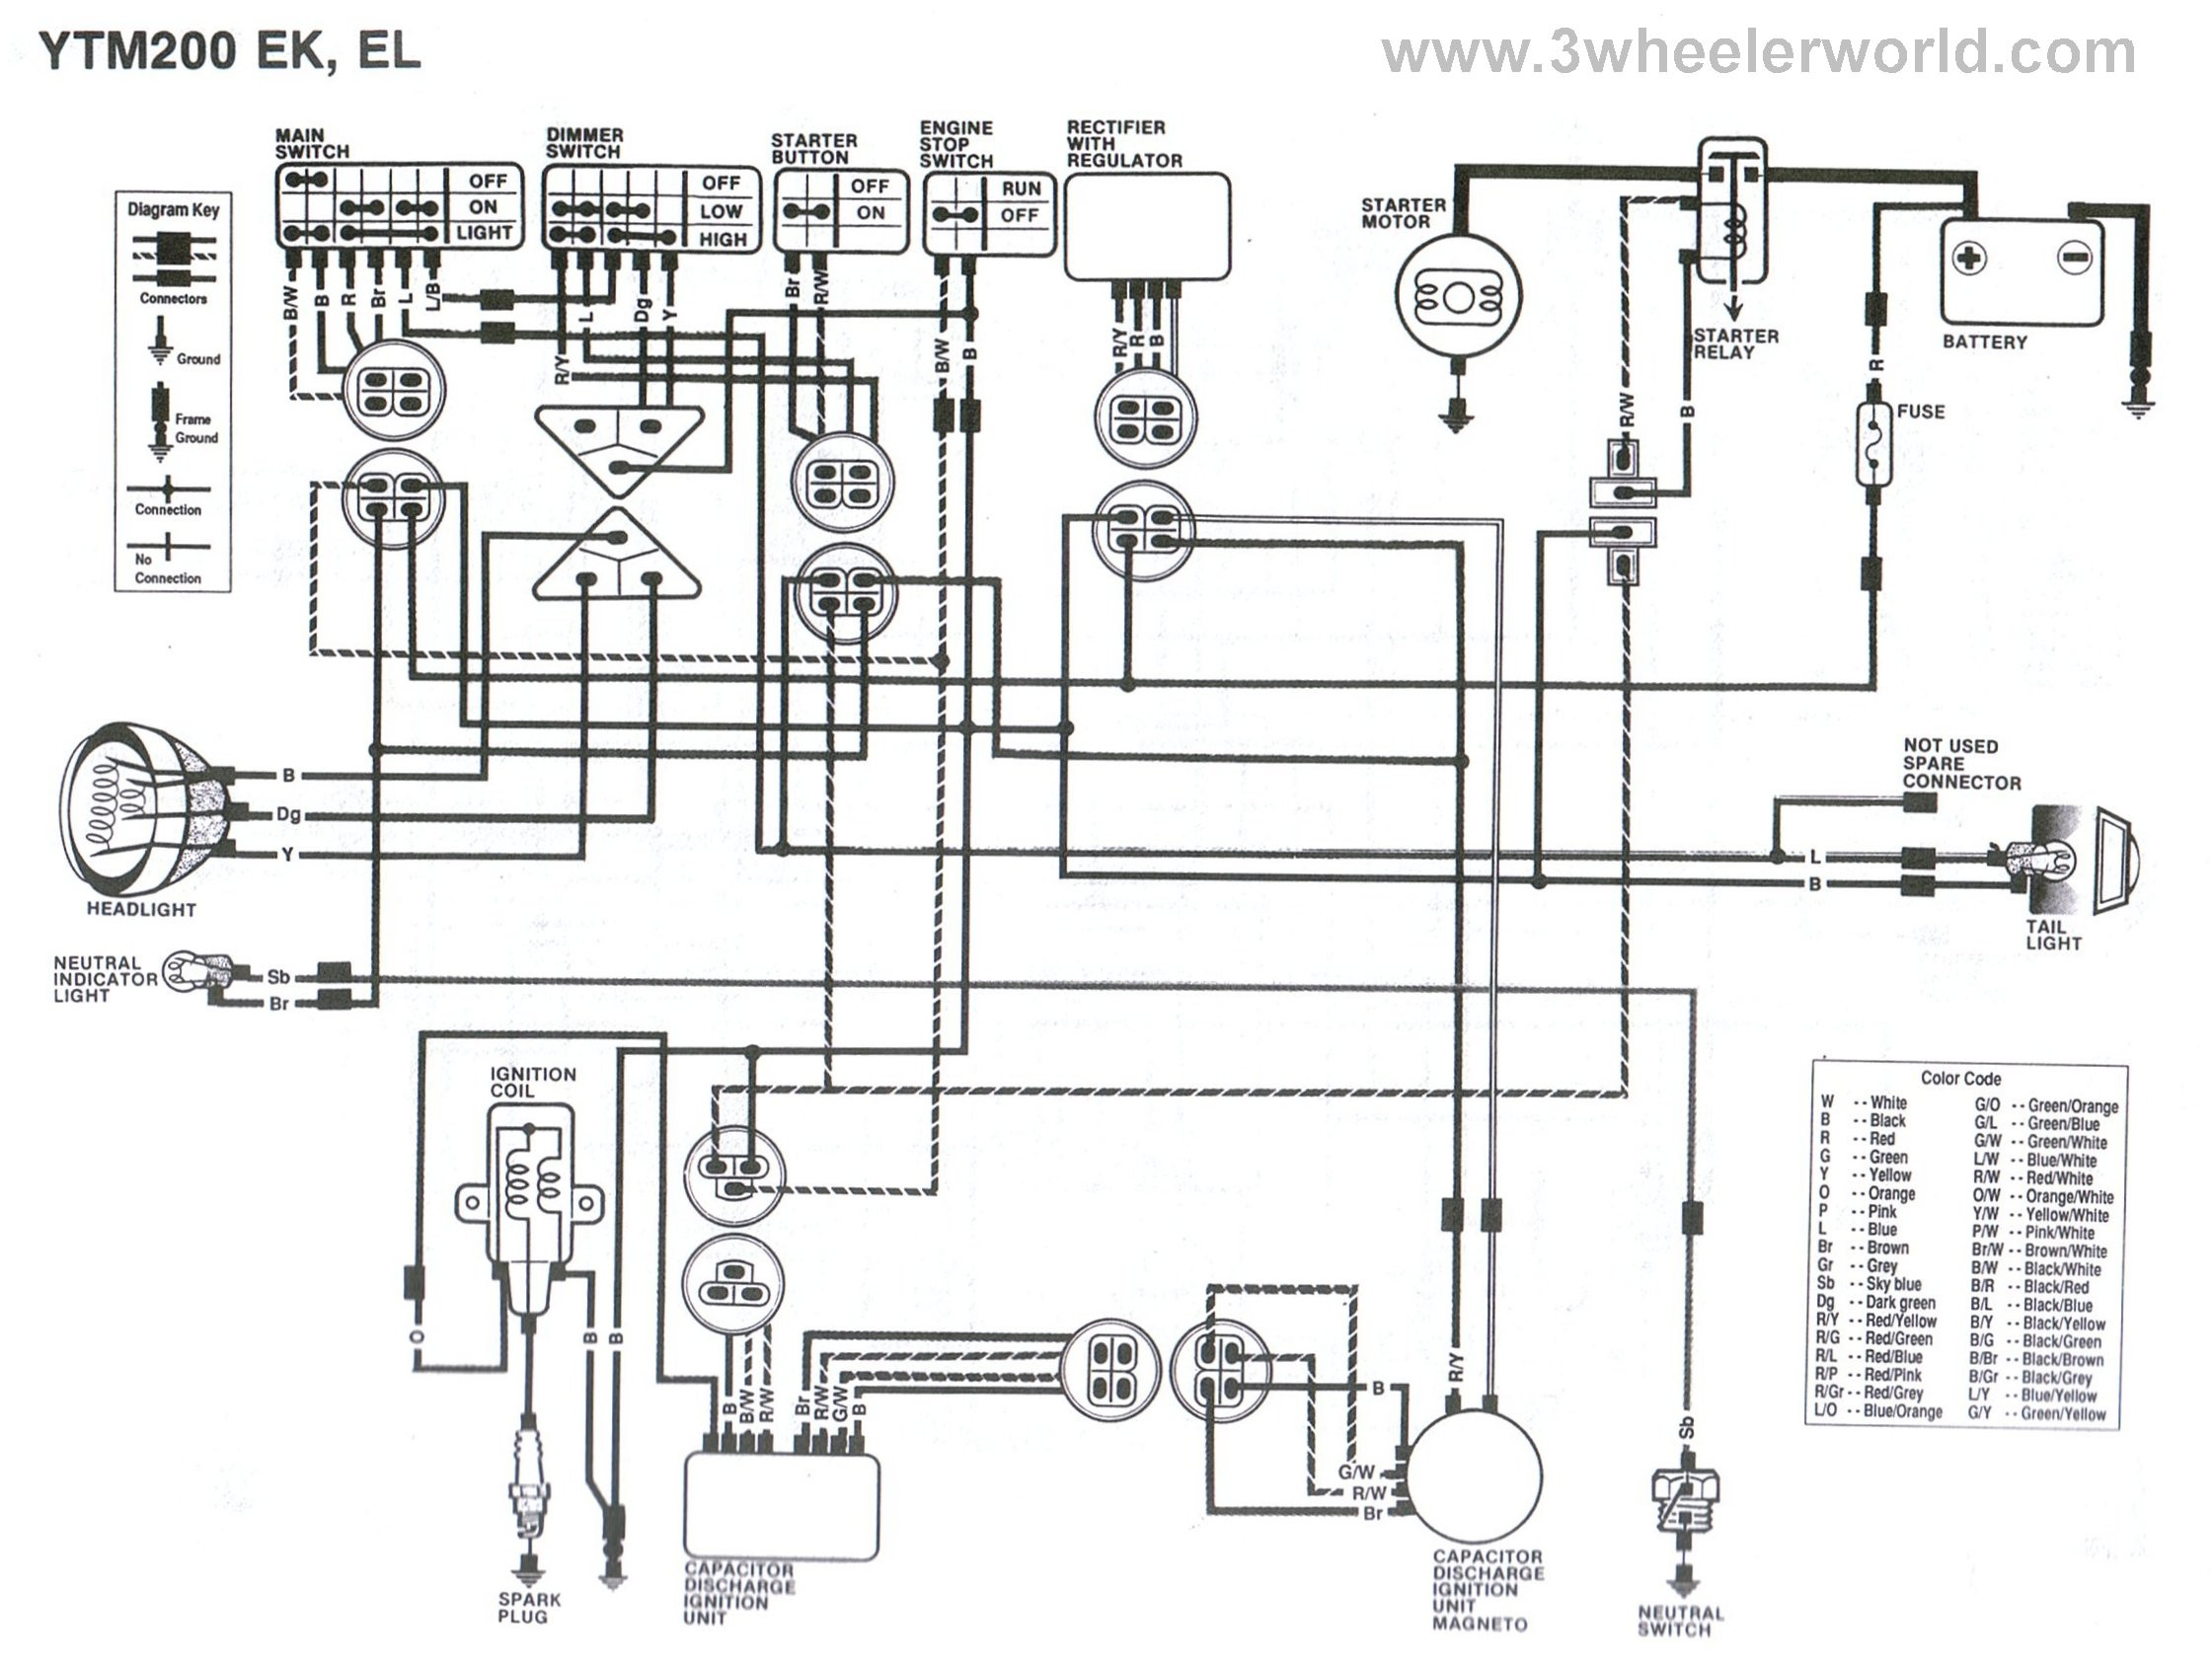 115 yamaha outboard gauge wiring diagram free picture circuit 25 hp johnson wiring-diagram yamaha outboard gauges wiring diagram wiring diagram image rh mainetreasurechest com yamaha outboard tach wiring diagram yamaha outboard wiring diagram pdf